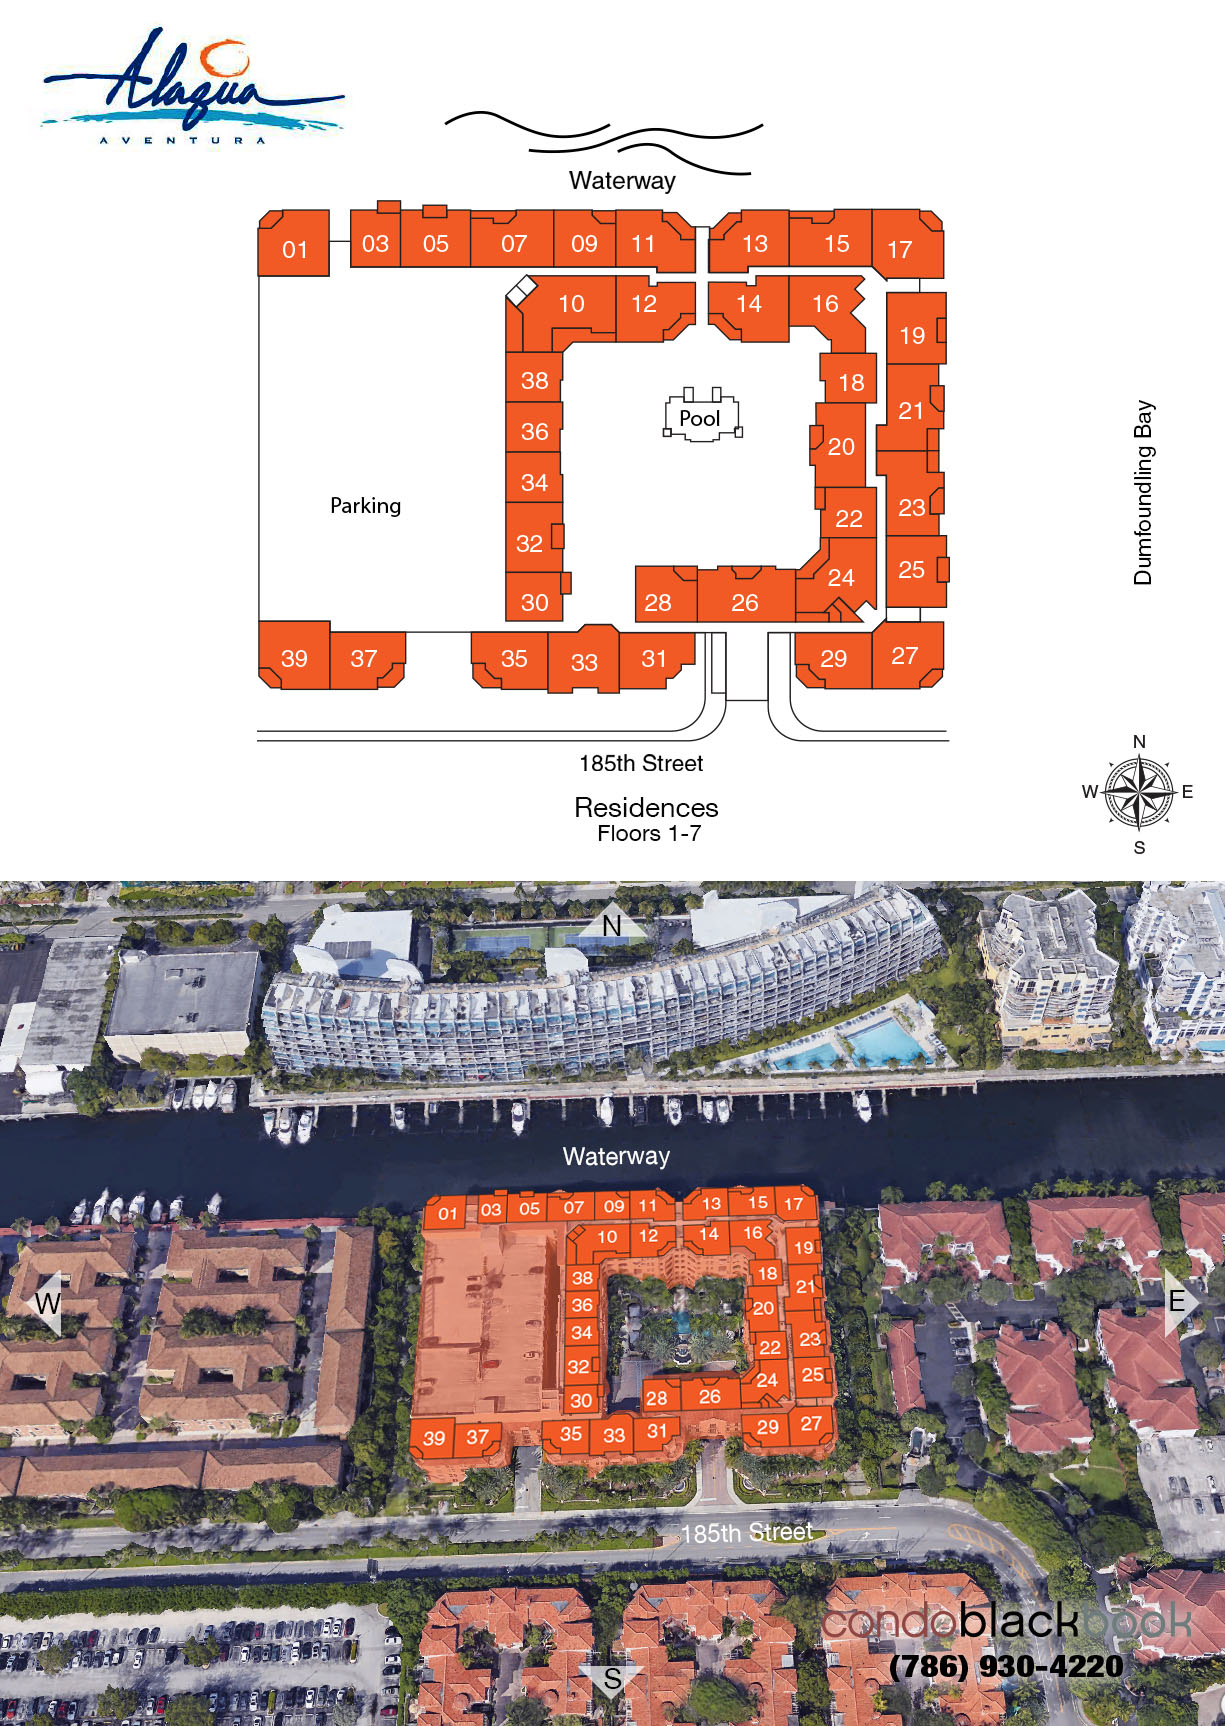 Alaqua floorplan and site plan